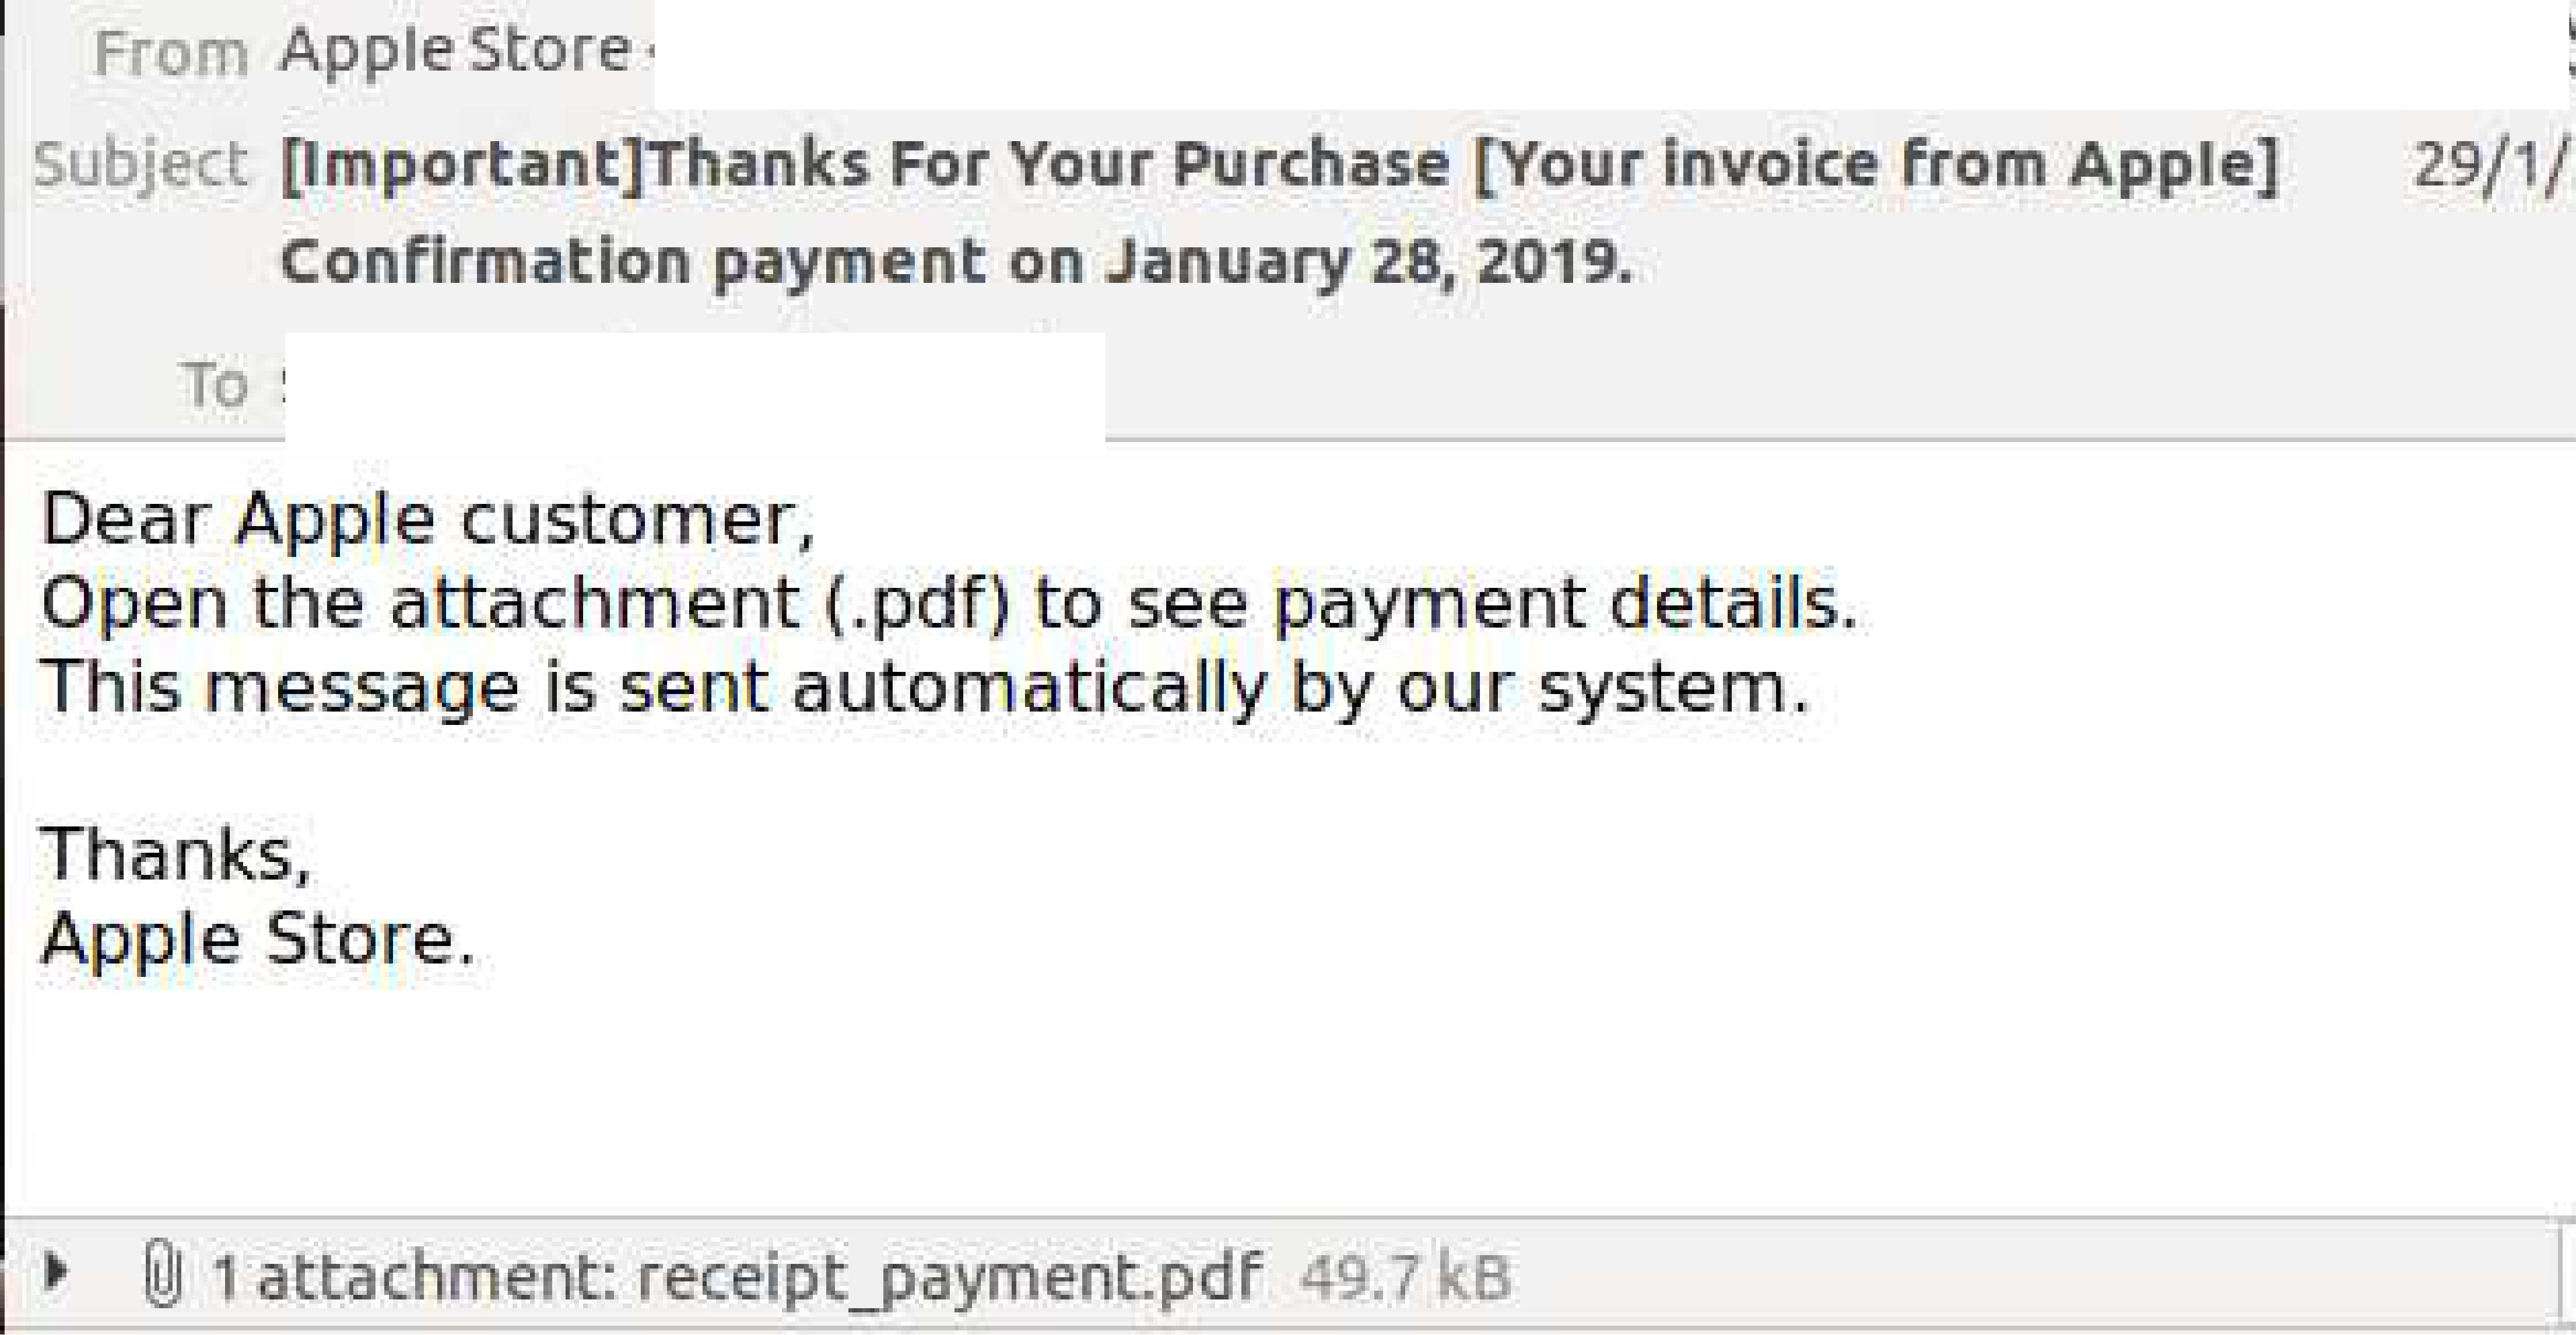 Phishing email uses fake Apple Store branding to trick users